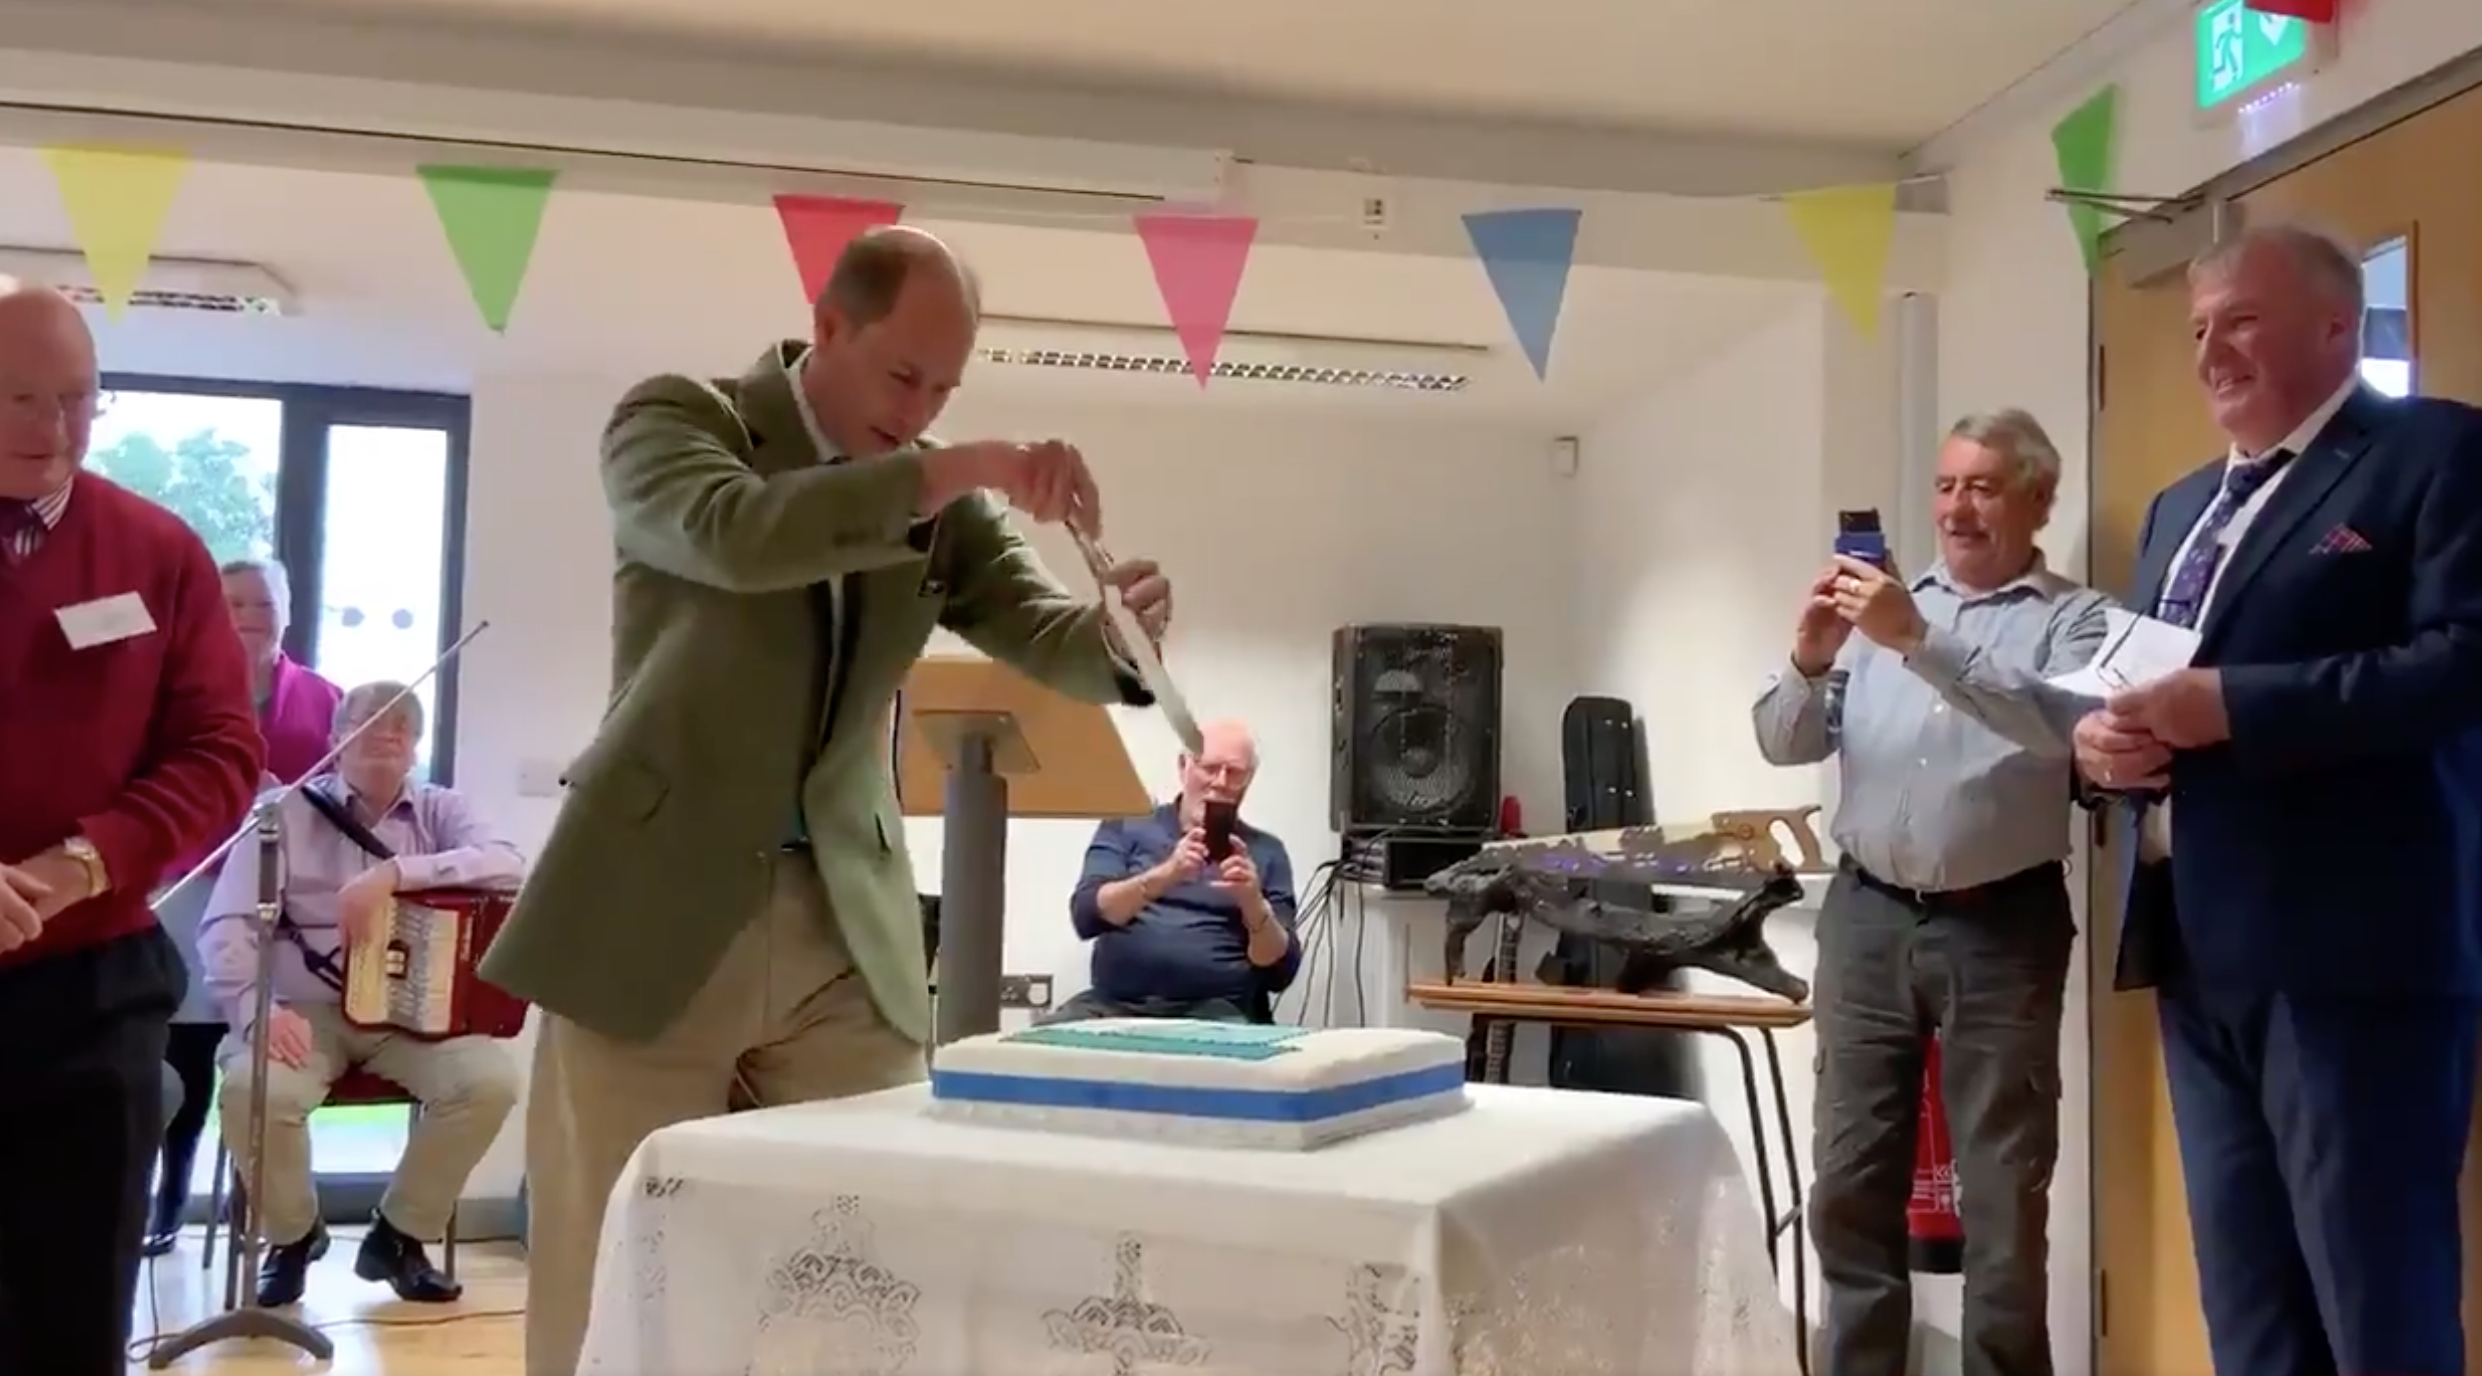 A balding white man holding a knife high above a sheet cake